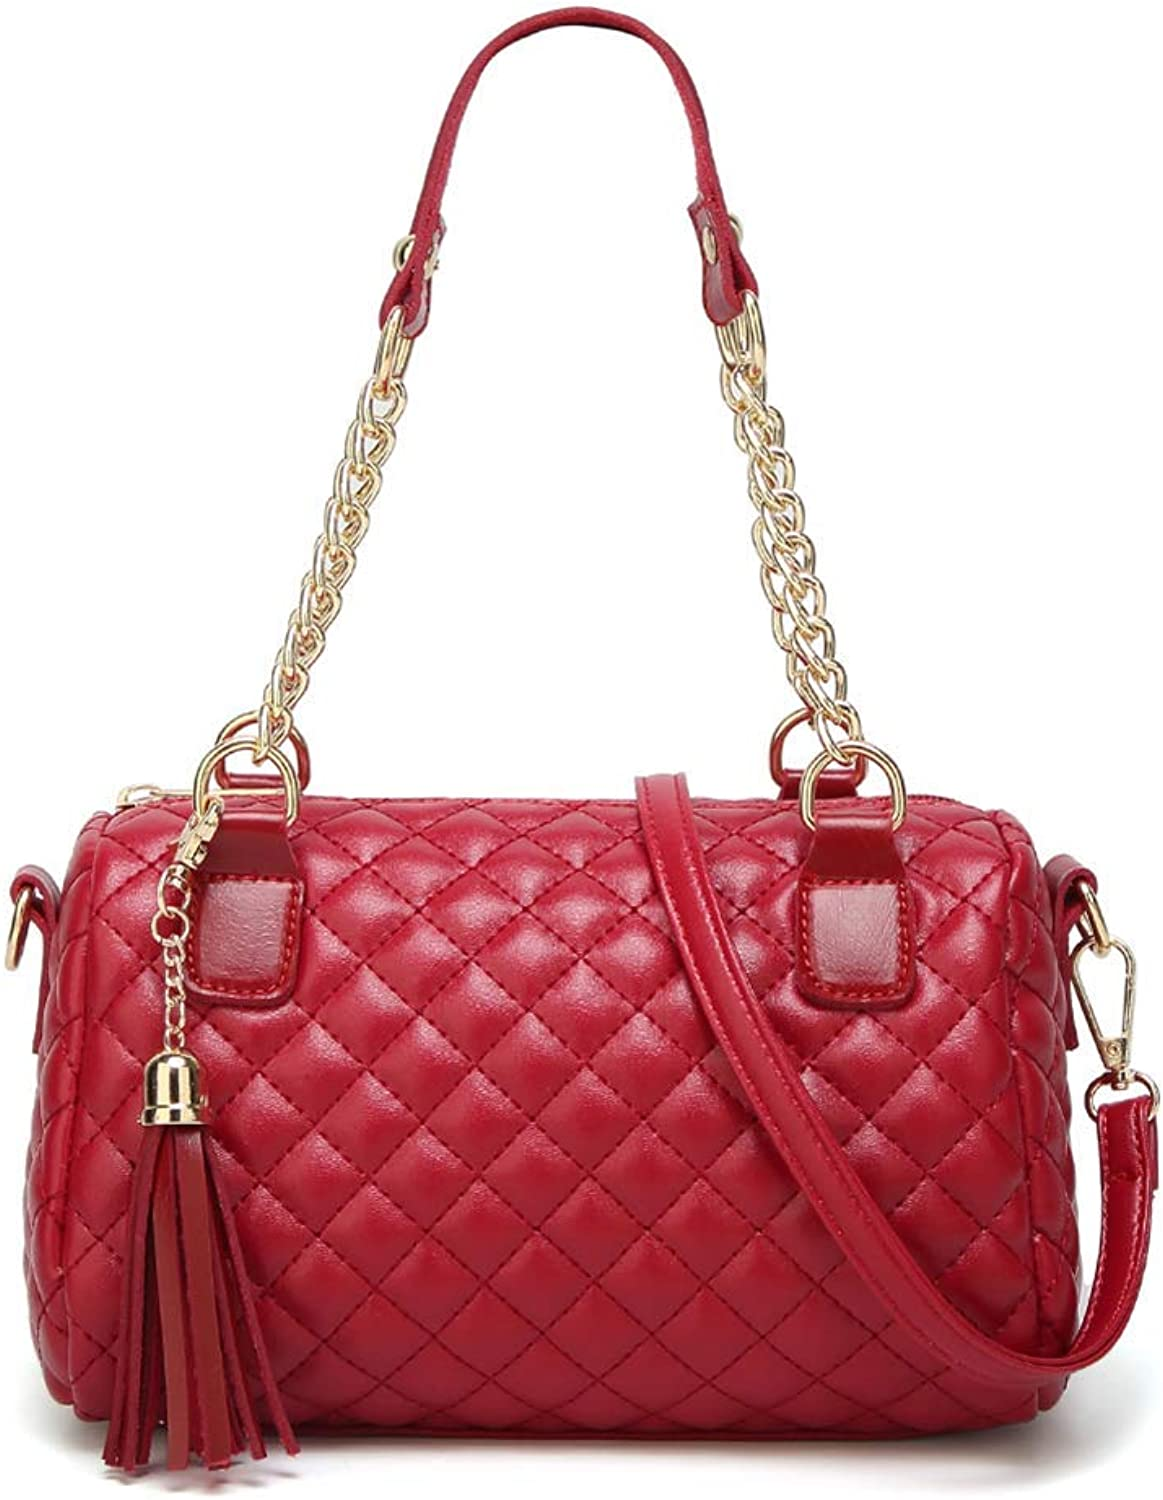 Ladies Handbag Shoulder Crossbody Bag,Soft PU Leather Quilted Clutch Evening Simple Fashion Handbag Wallet,Red (color   Red)